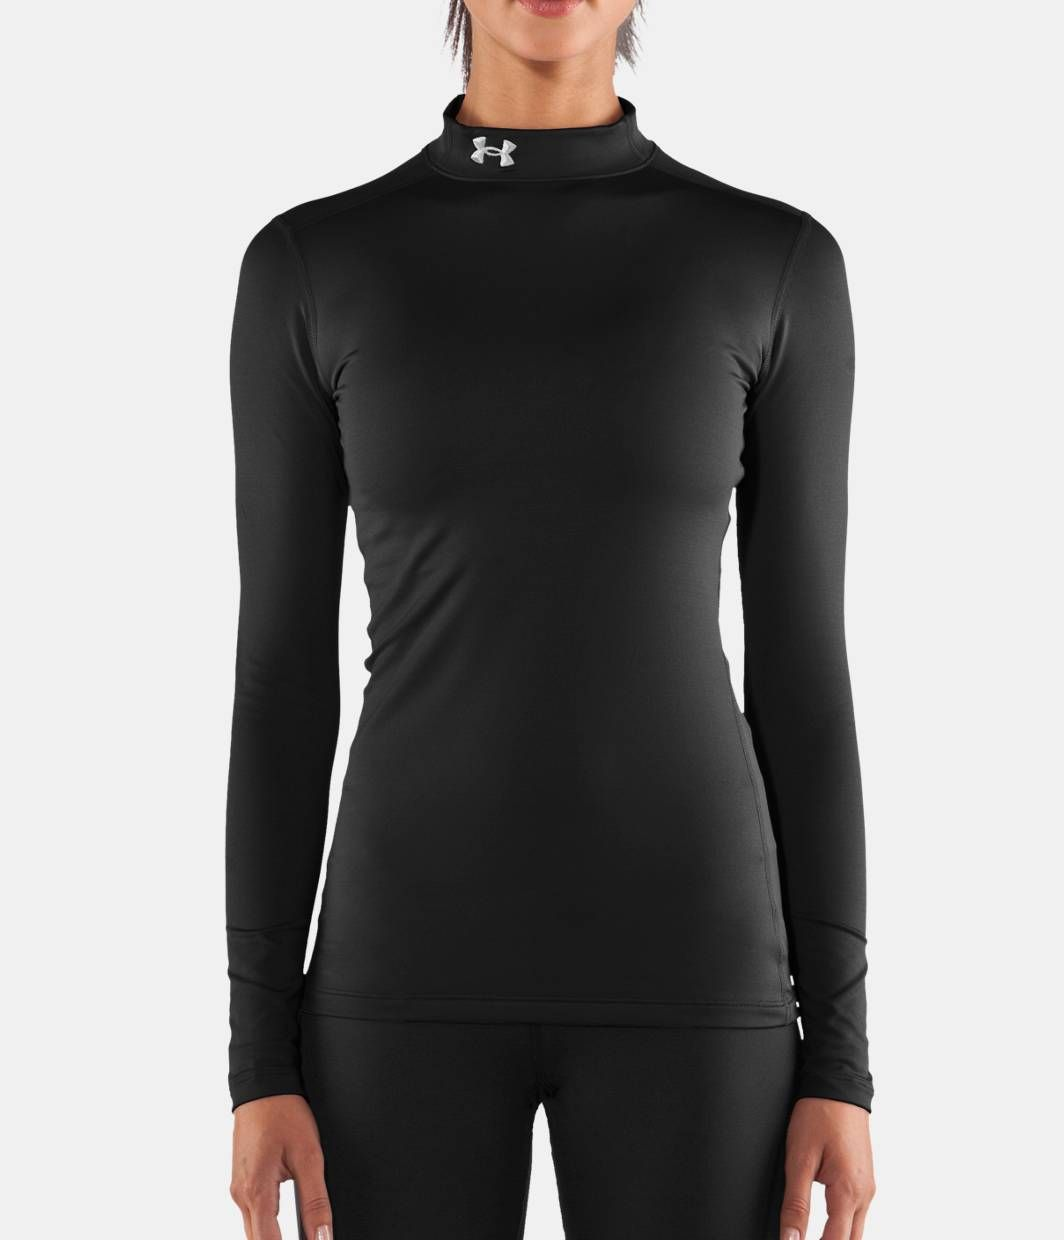 Cheap Under Armour Coldgear Compression Long Sleeve Mock Top Womens Black Online Store